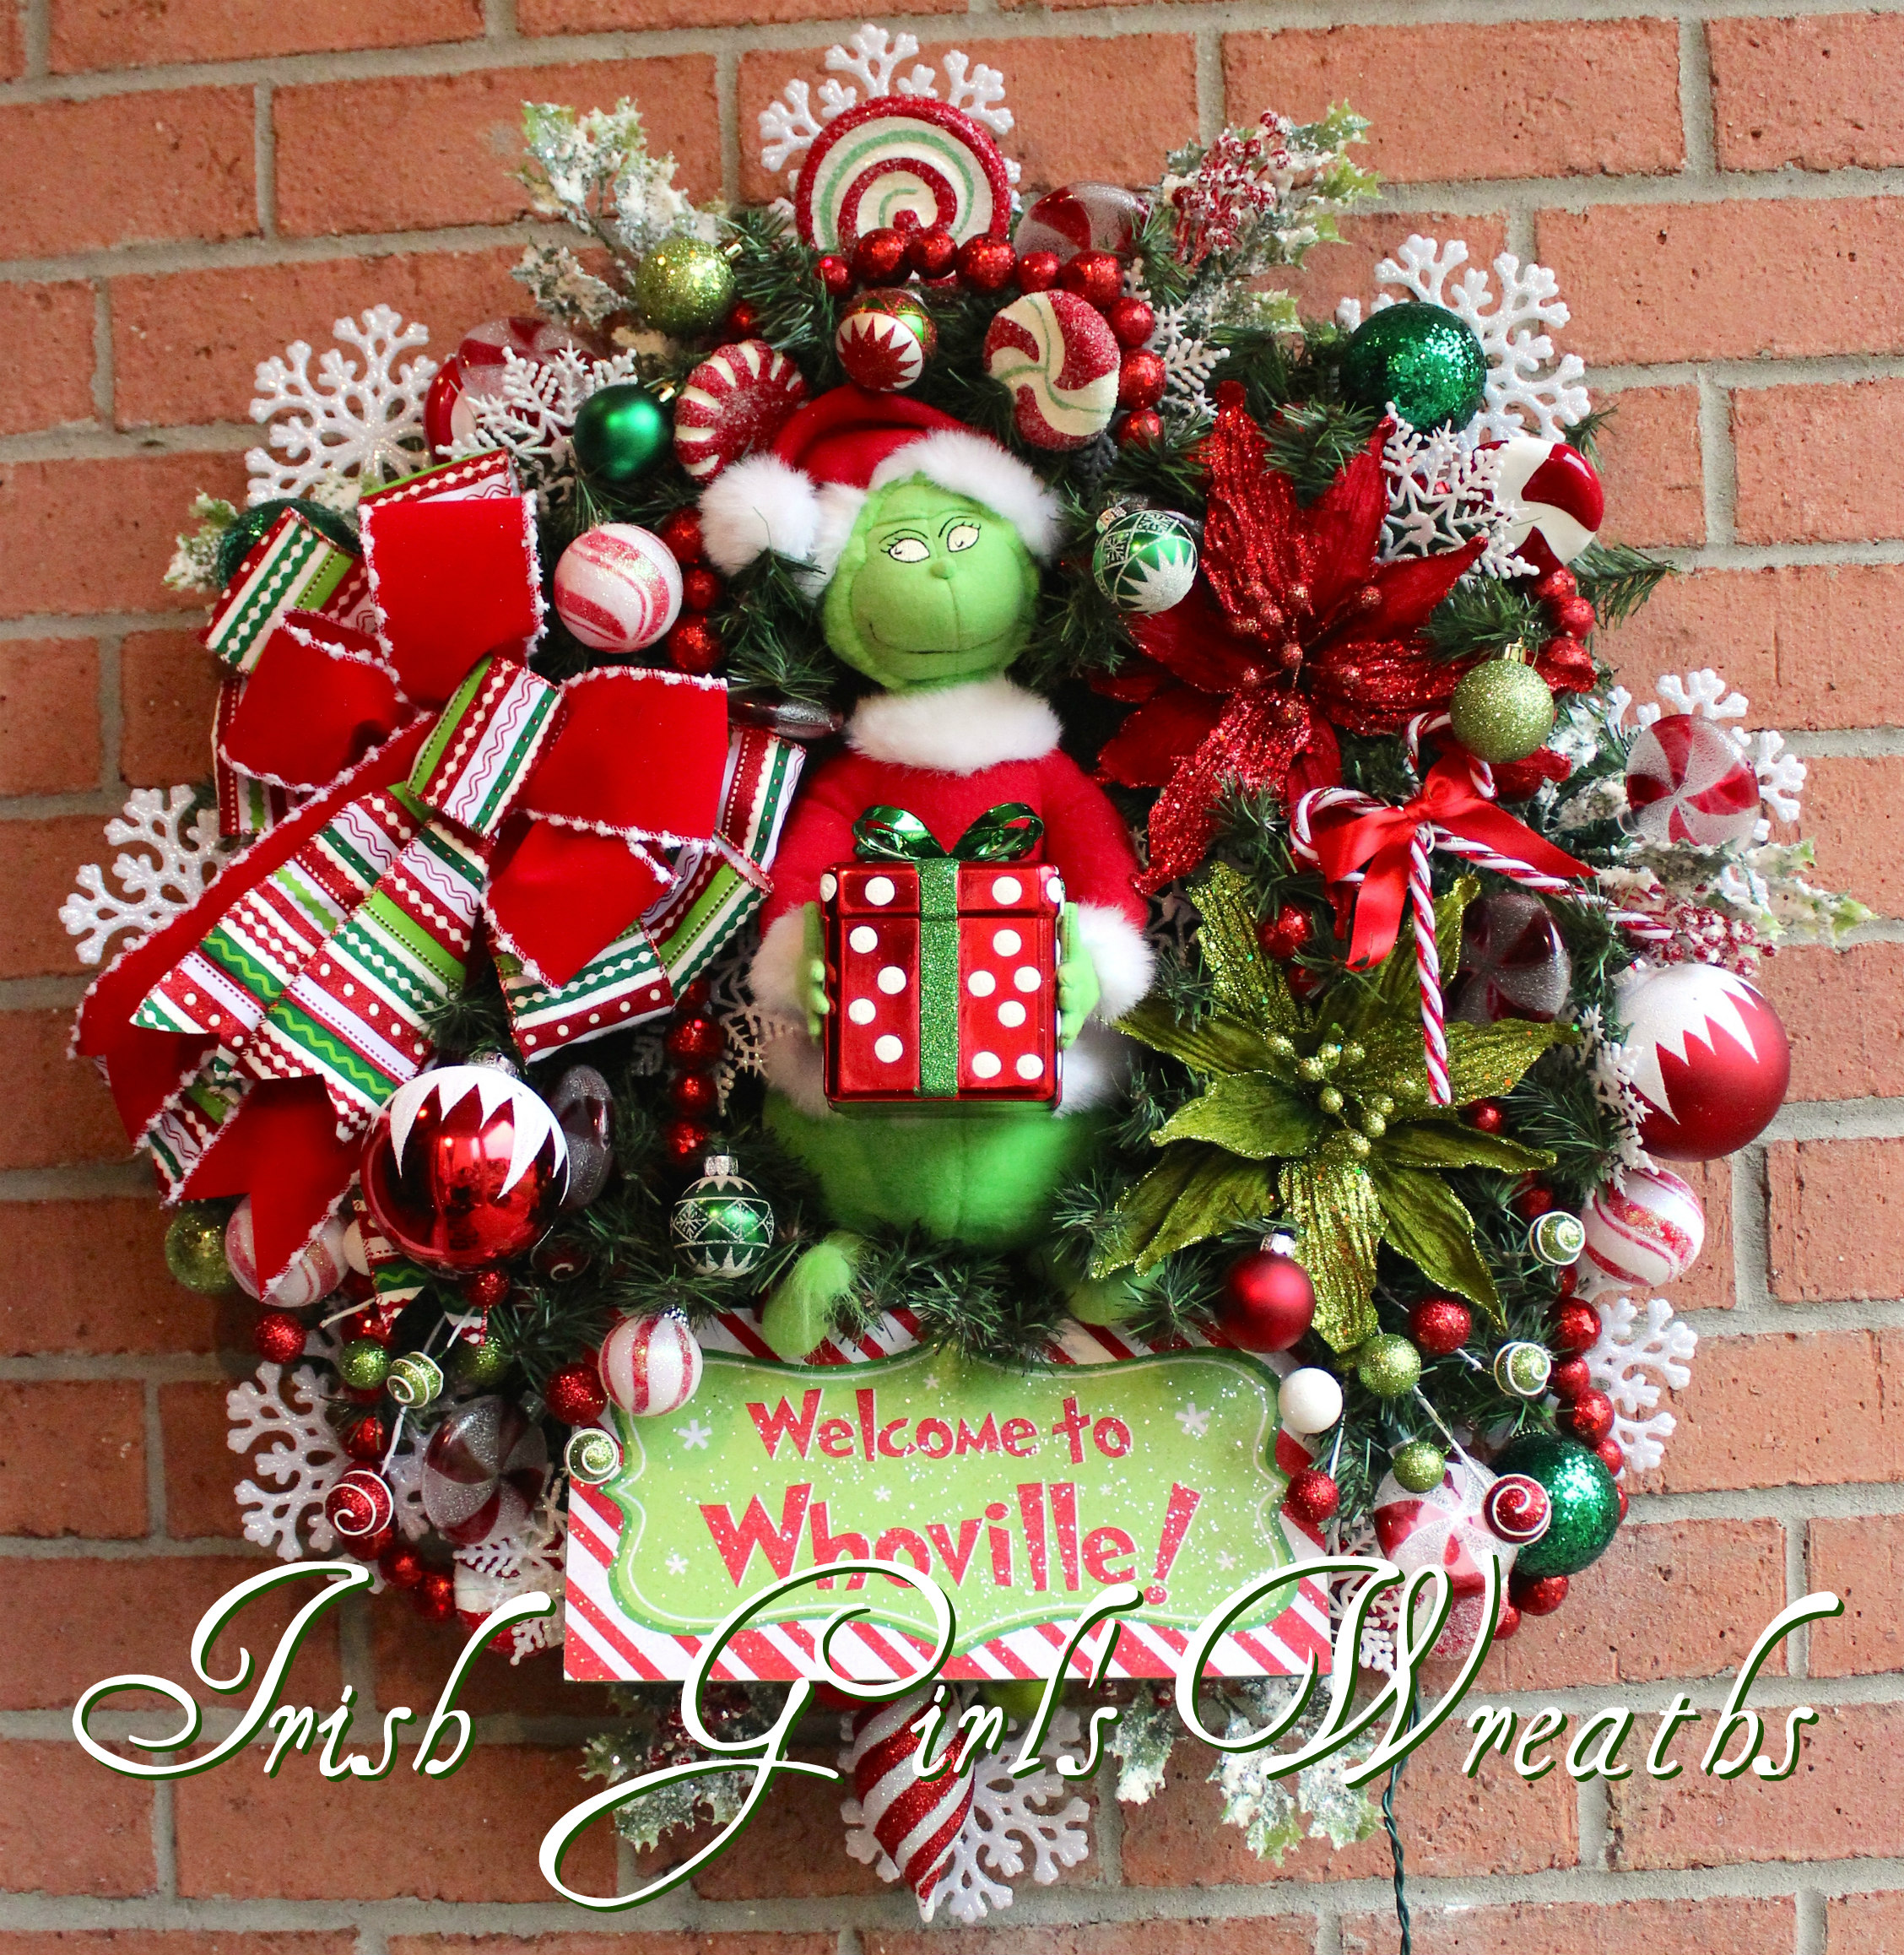 Grinch Wreath, Large Pre-lit Welcome to Whoville Grinch Christmas Wreath